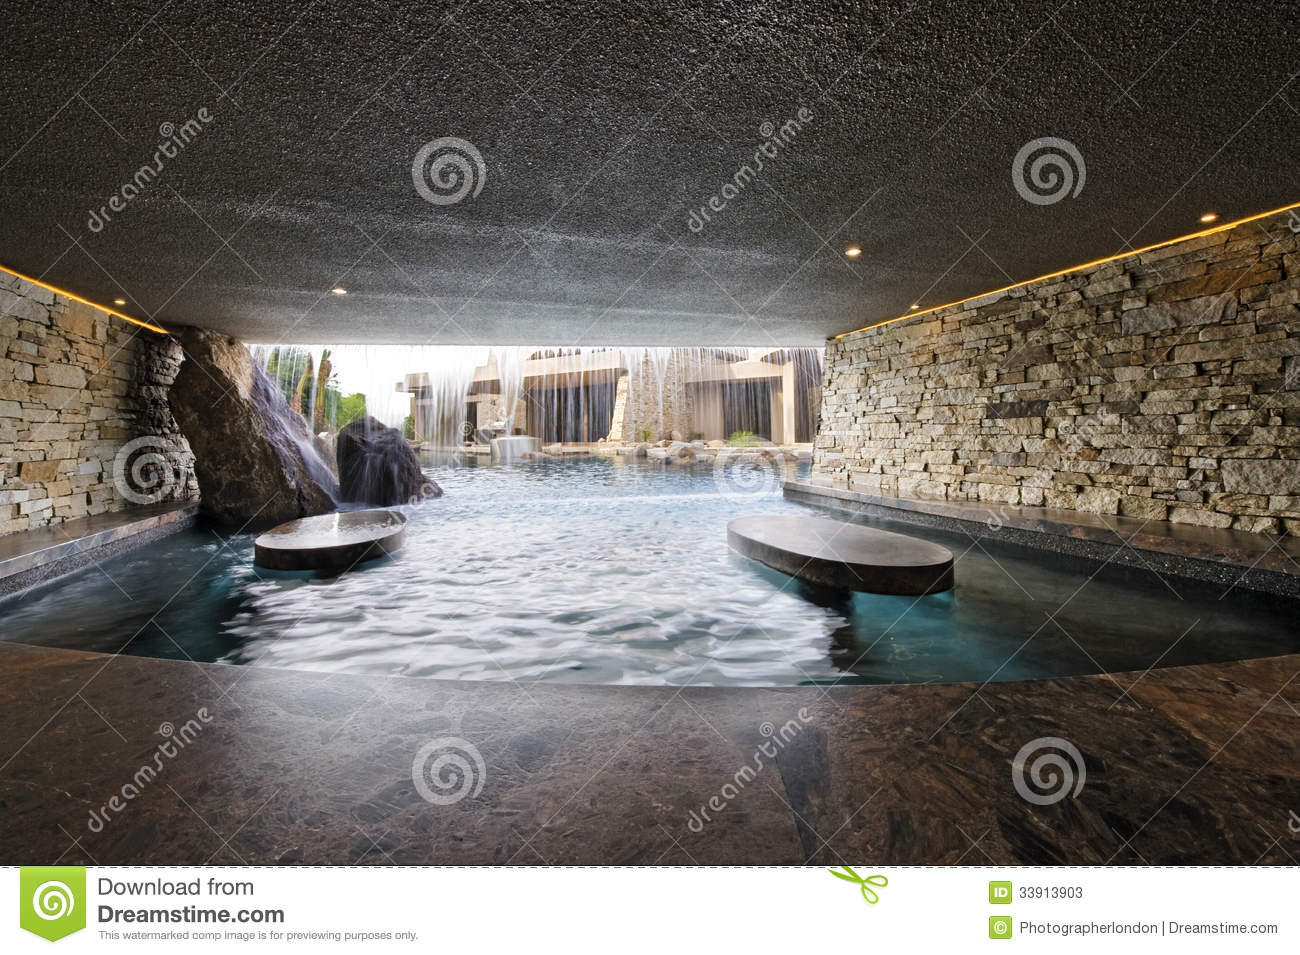 piscine avec les murs en pierre contre la chambre image stock image du maison jour 33913903. Black Bedroom Furniture Sets. Home Design Ideas